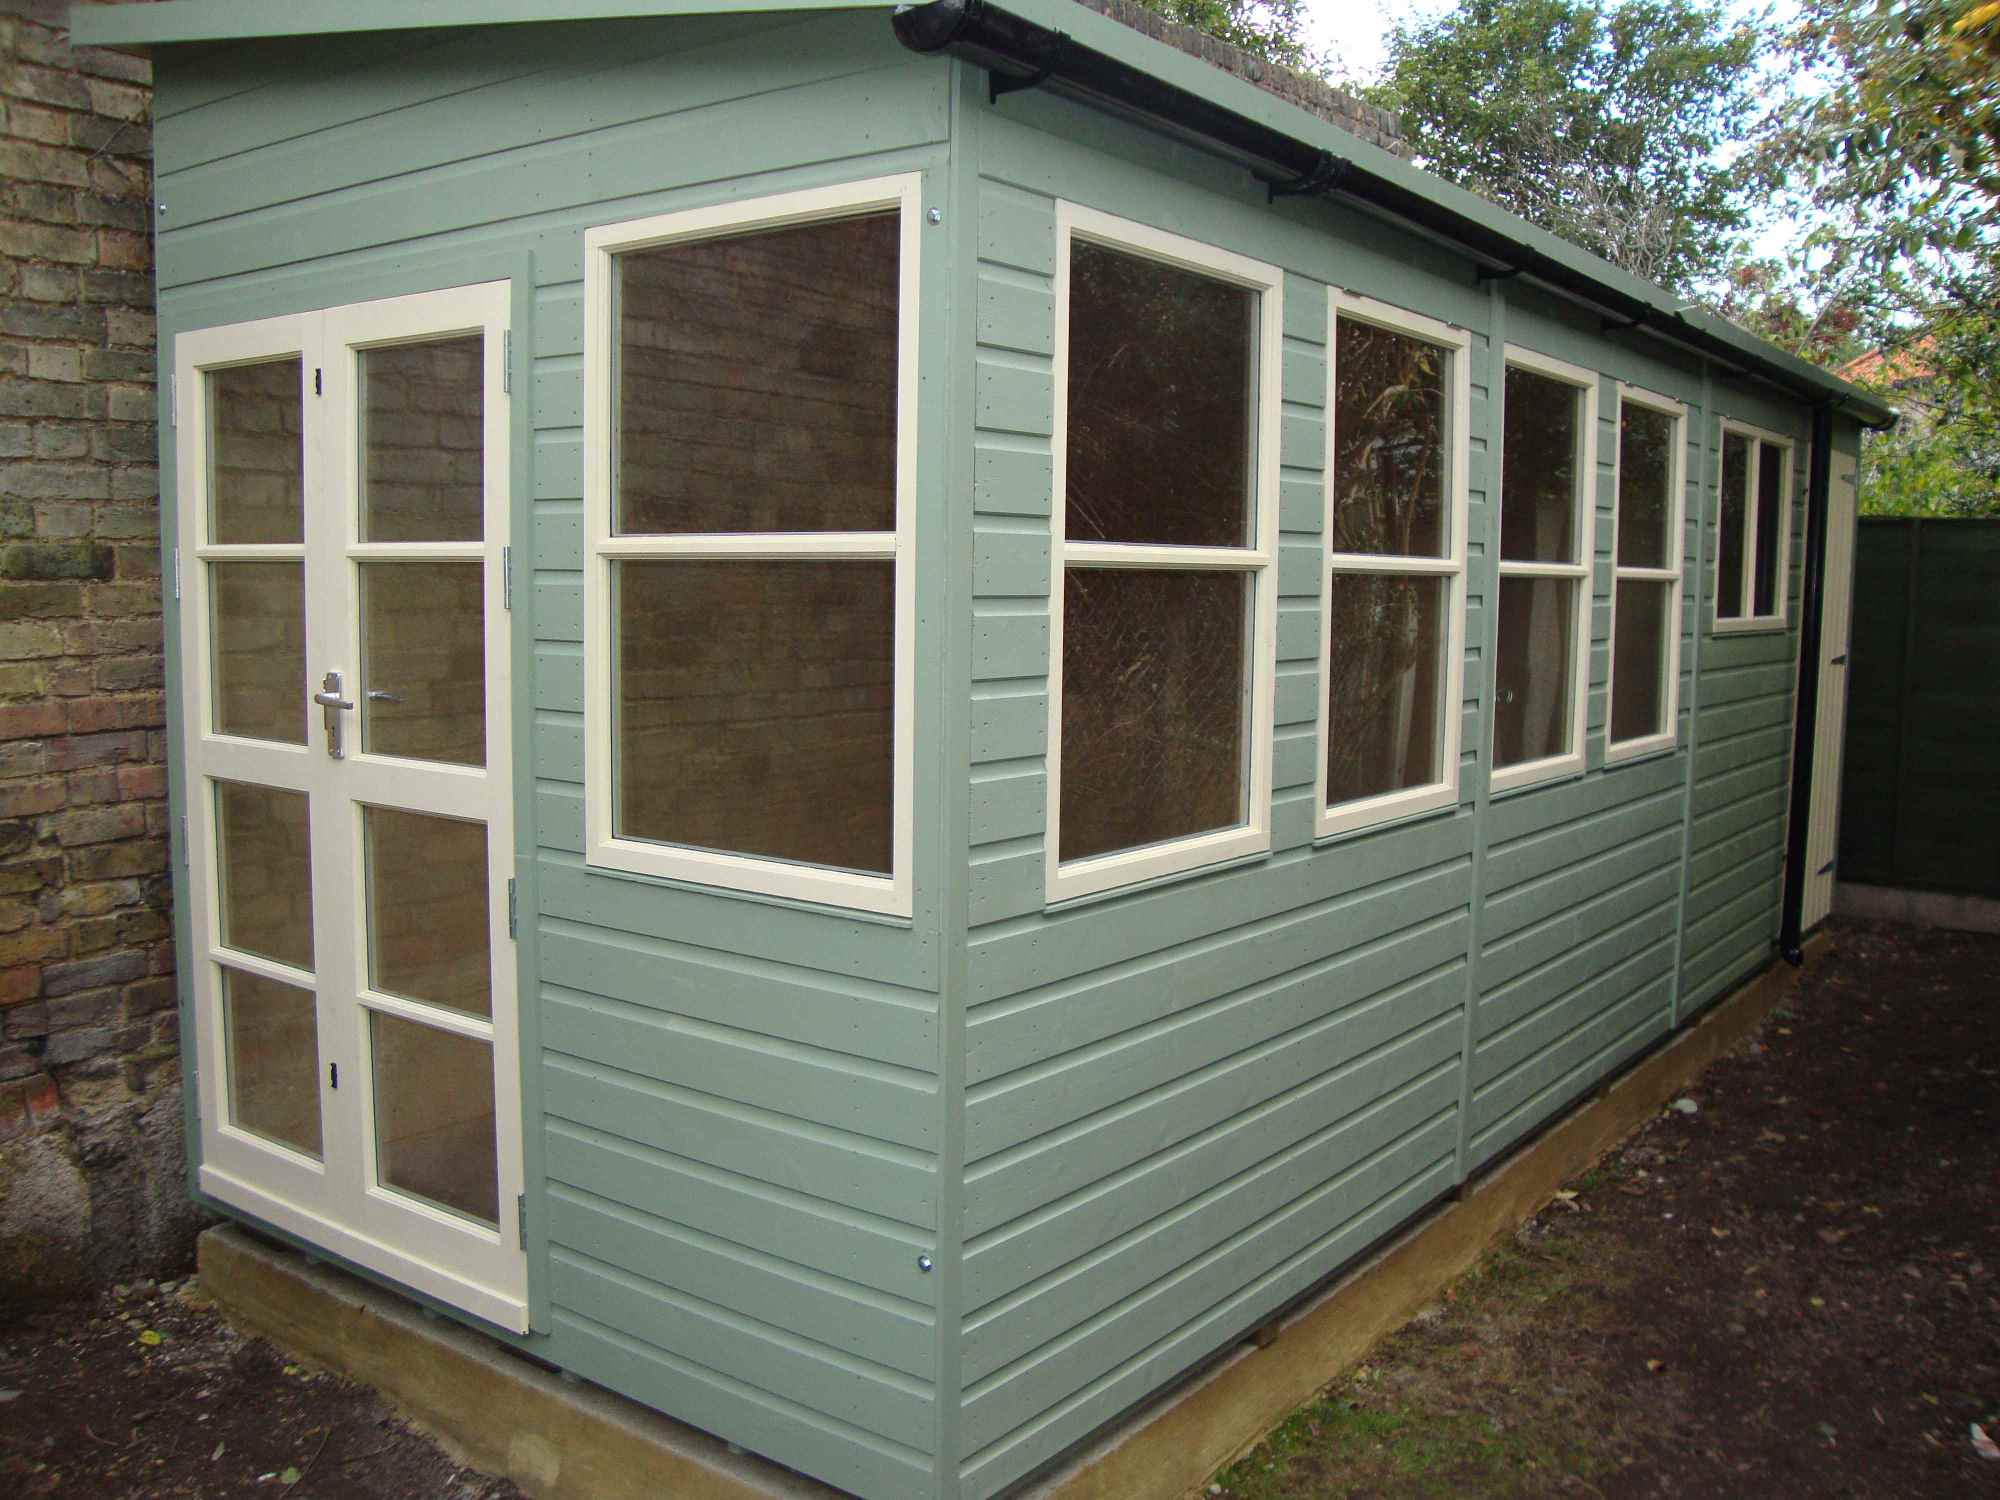 1500 #5B4E38  Reverse Roof Slope Richmond Doors Sash Windows Partitioned Shed  image Shed Doors And Windows 41332000